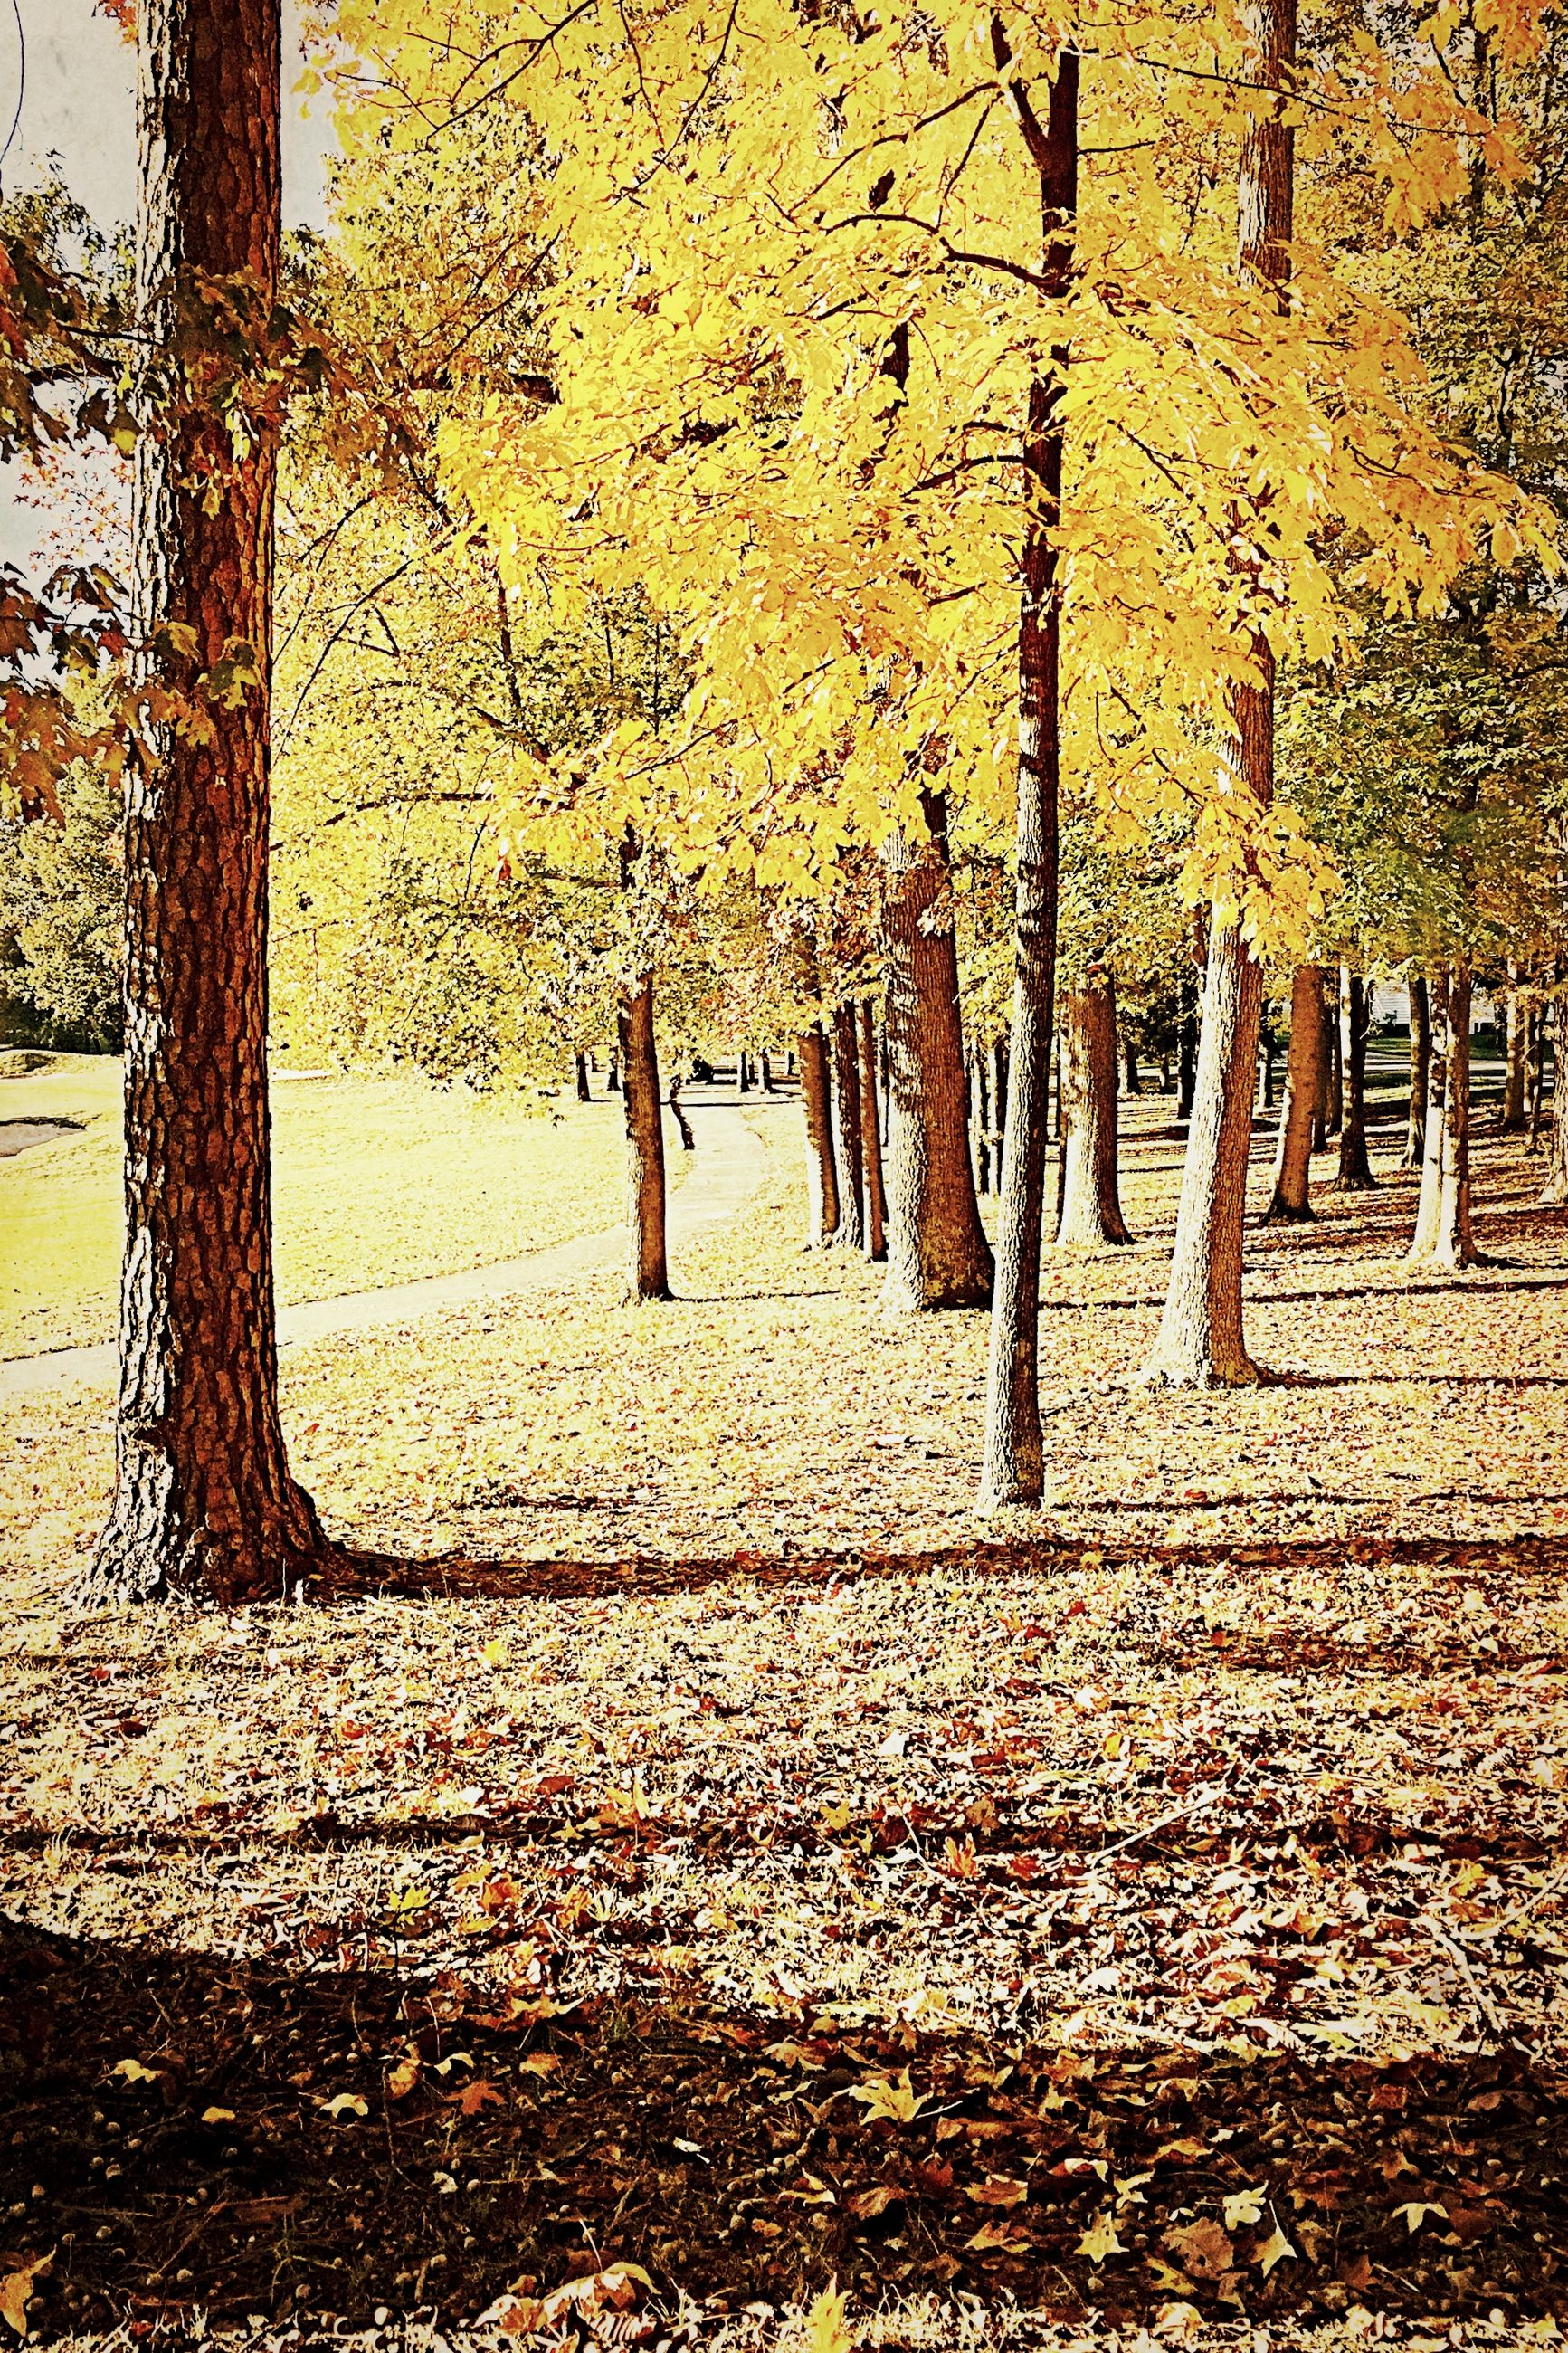 season, autumn, tree, change, leaf, yellow, street, nature, day, fallen, road, outdoors, growth, dry, weather, orange color, built structure, no people, wet, tranquility